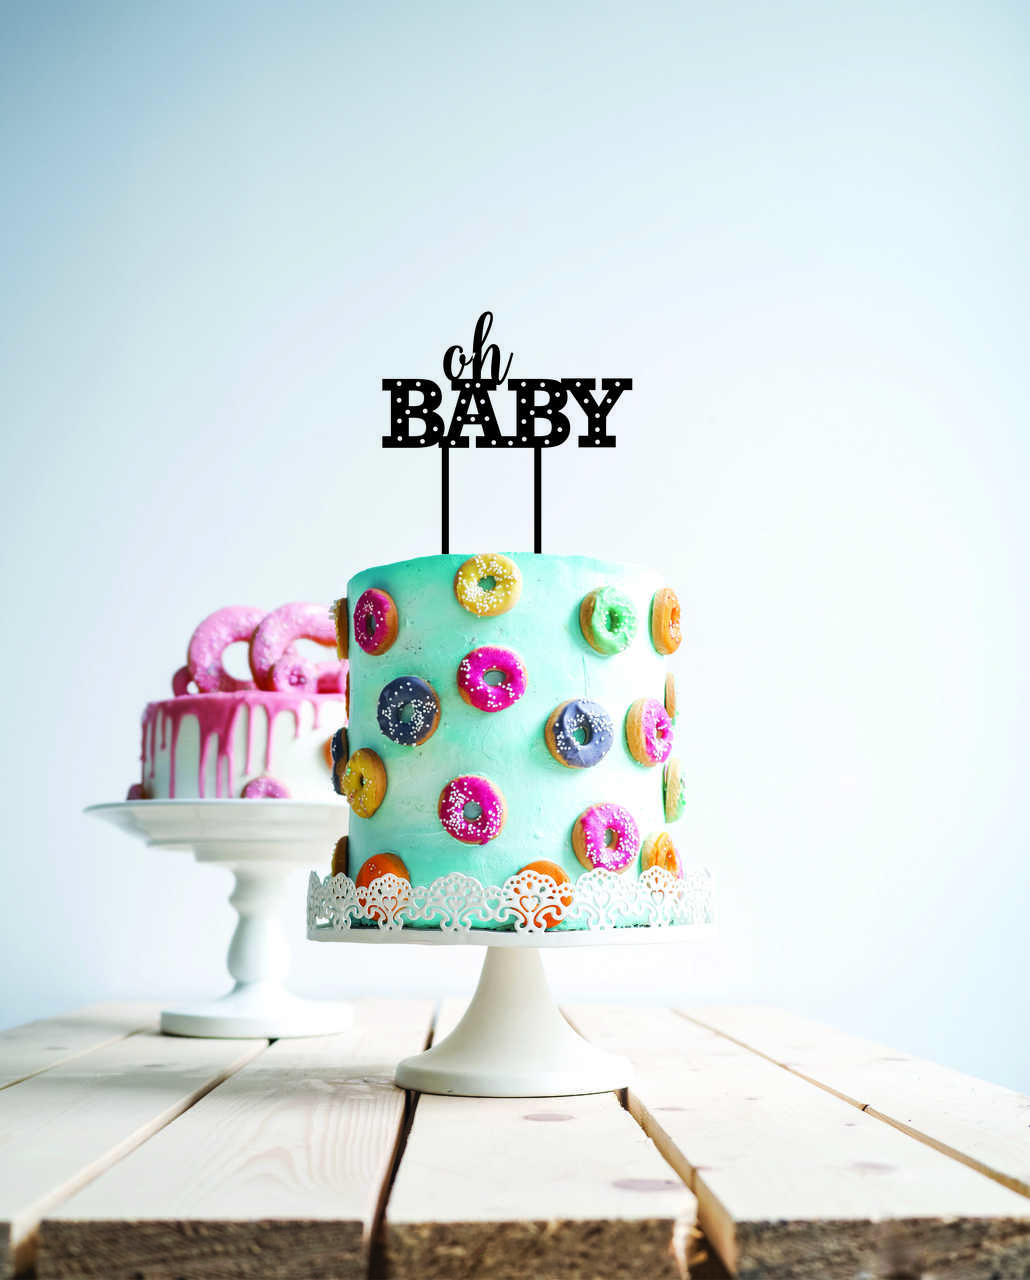 Oh baby - hollywood lights cake topper